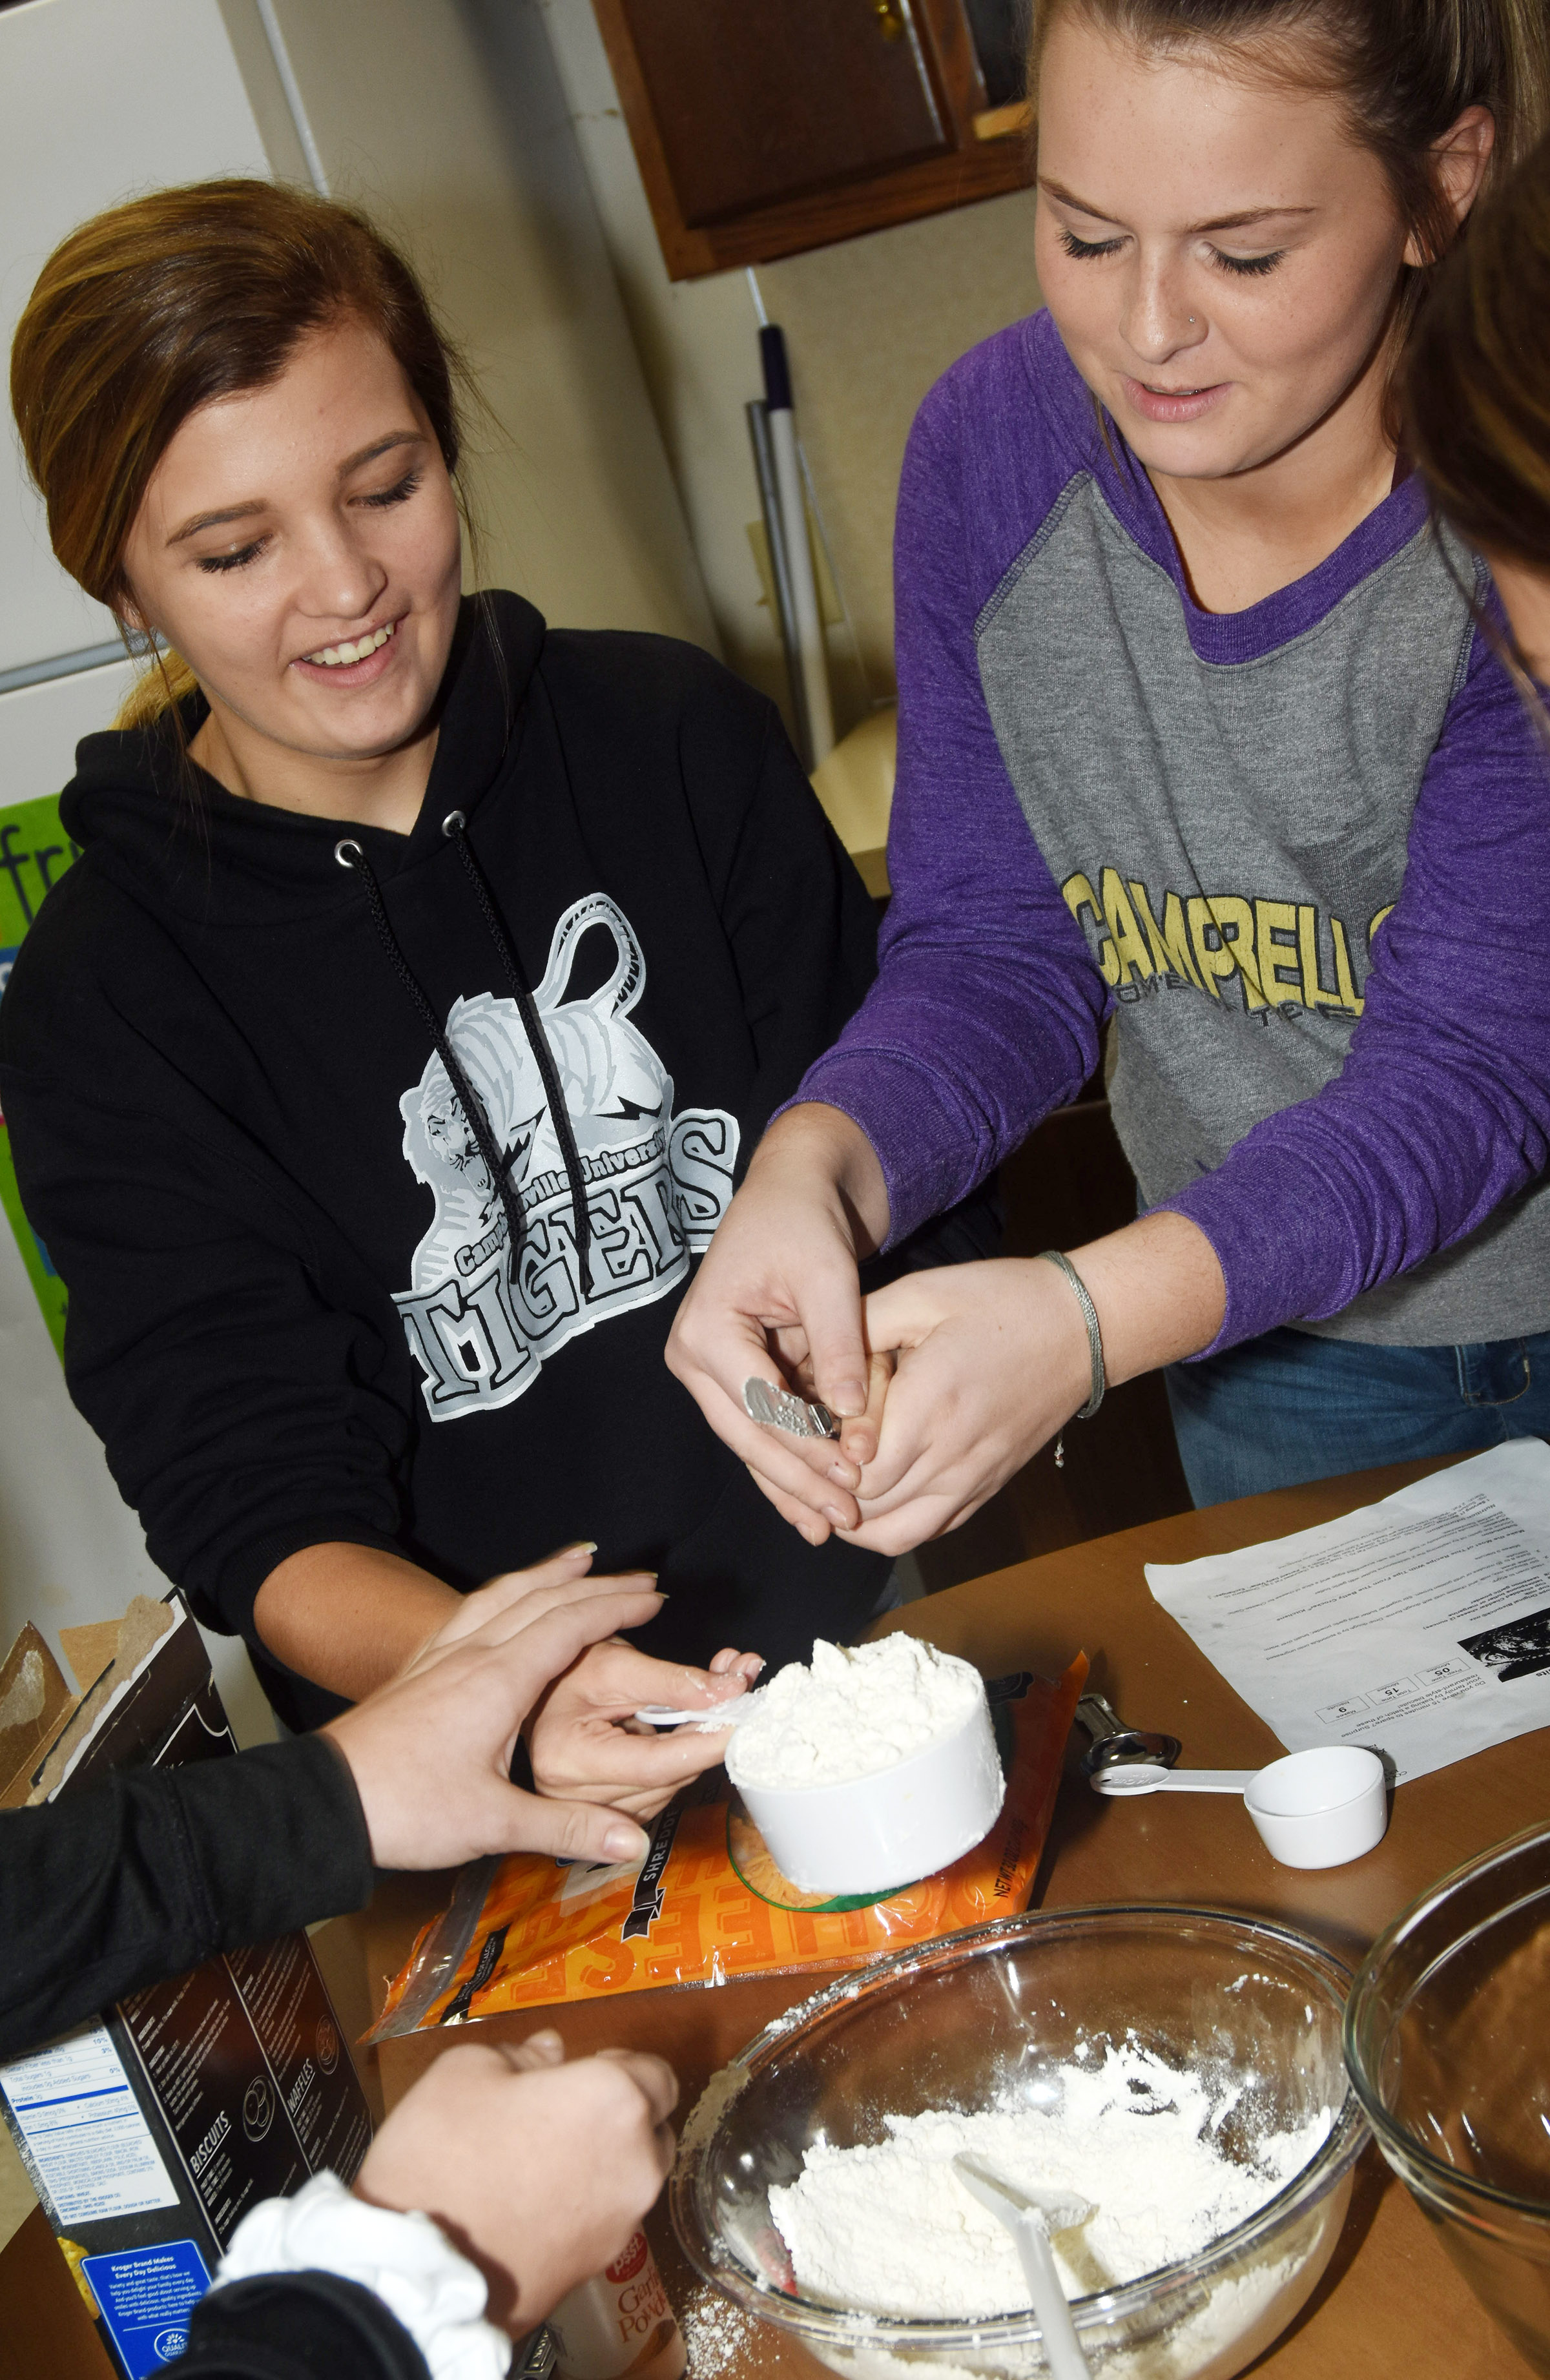 CHS sophomores Carly Adams, at left, and Taylor Knight mix ingredients as they make homemade biscuits.